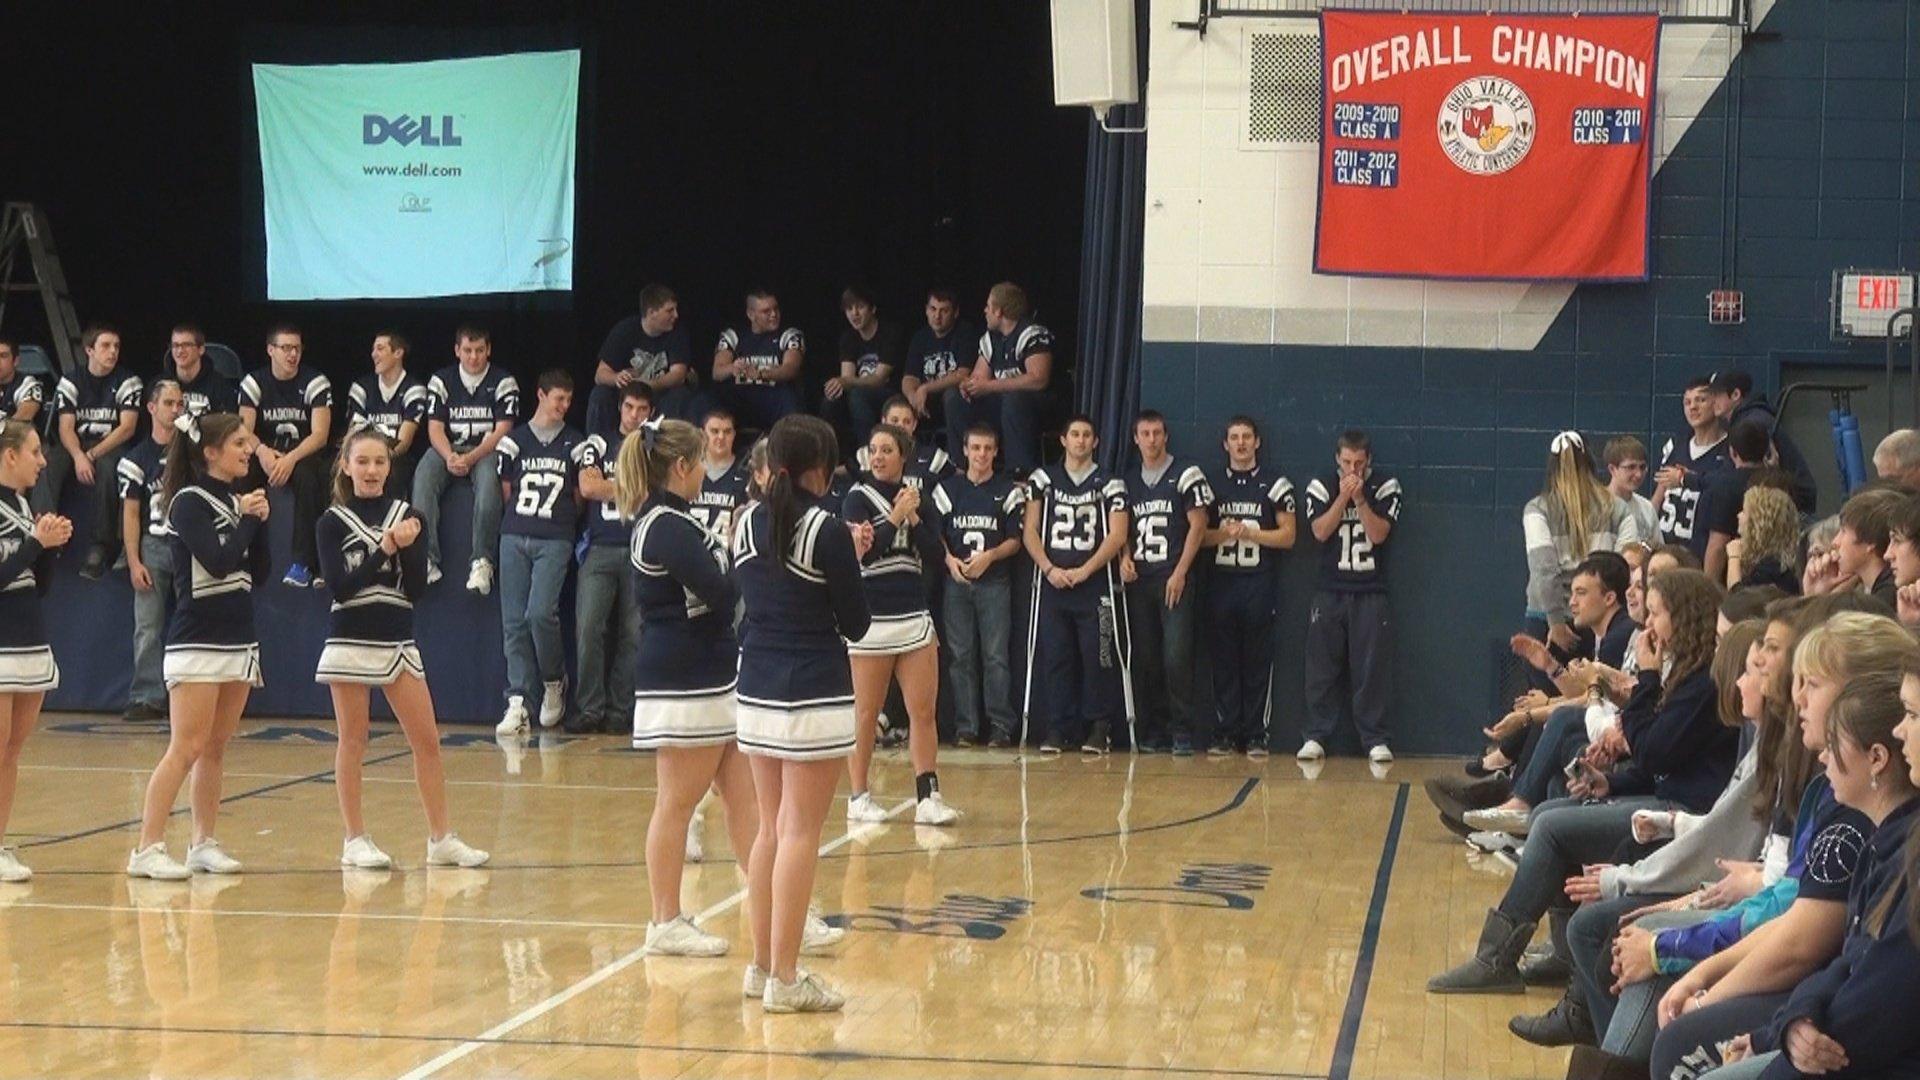 Weirton Madonna Football Weirton Madonna Students Pump